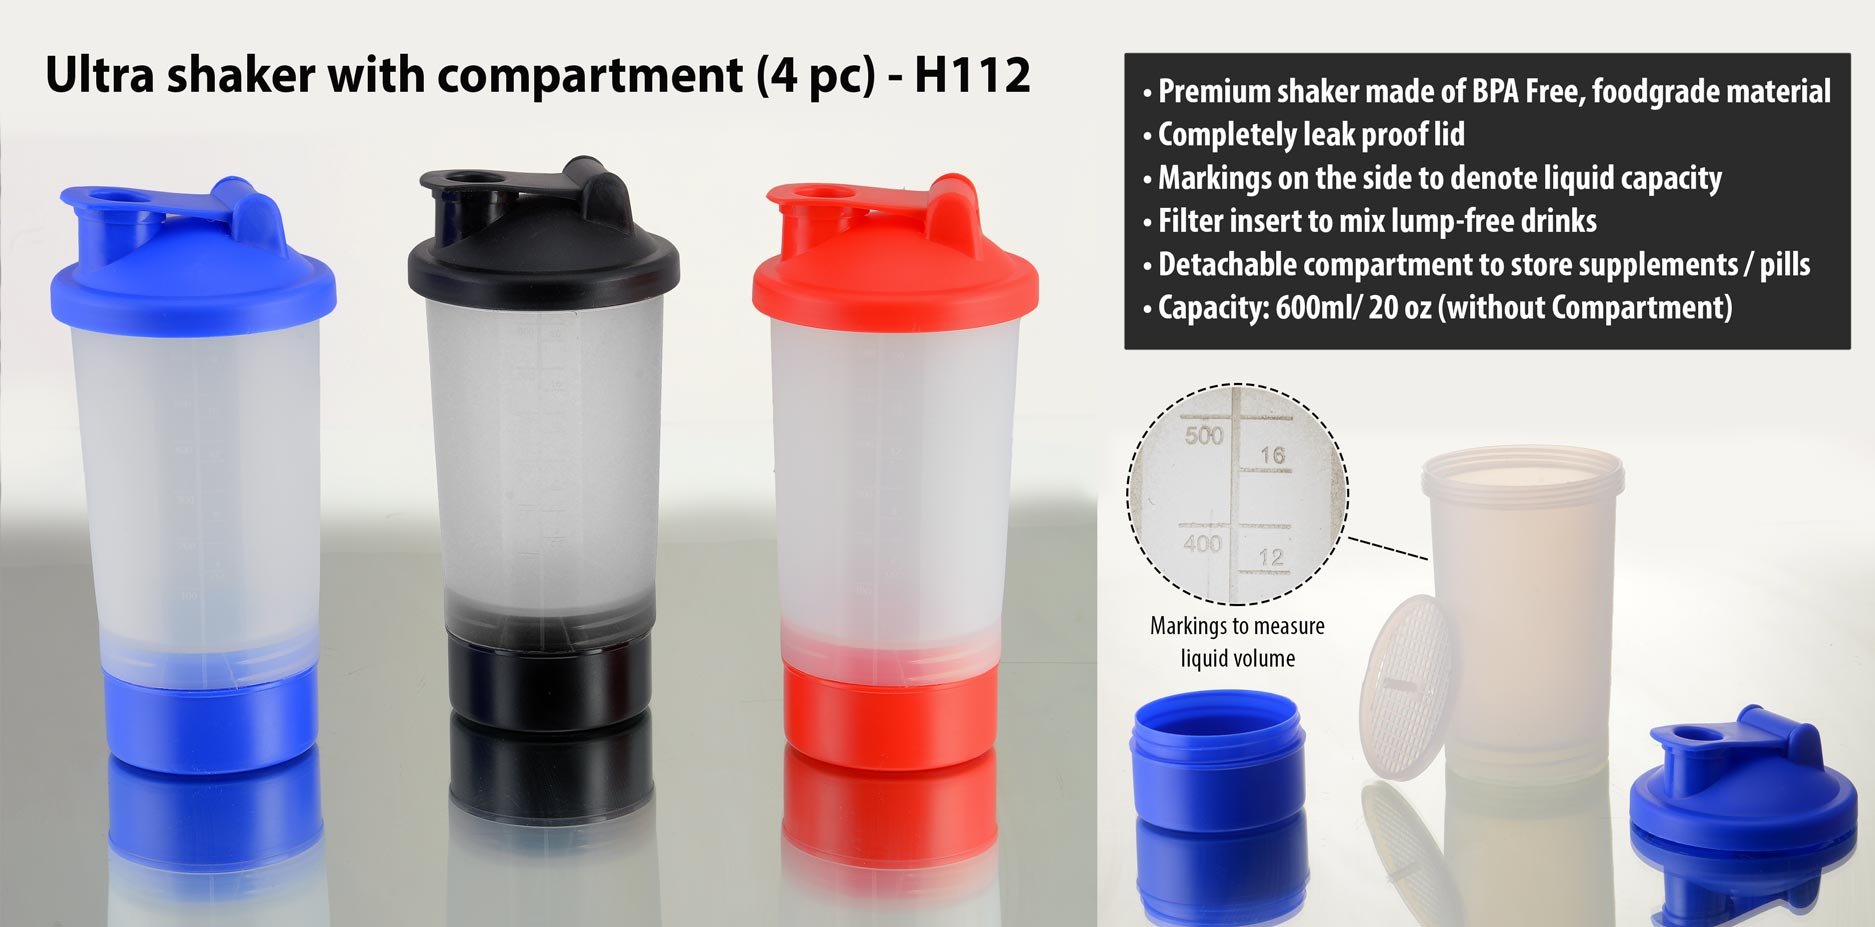 Ultra shaker with compartment (4 pc)